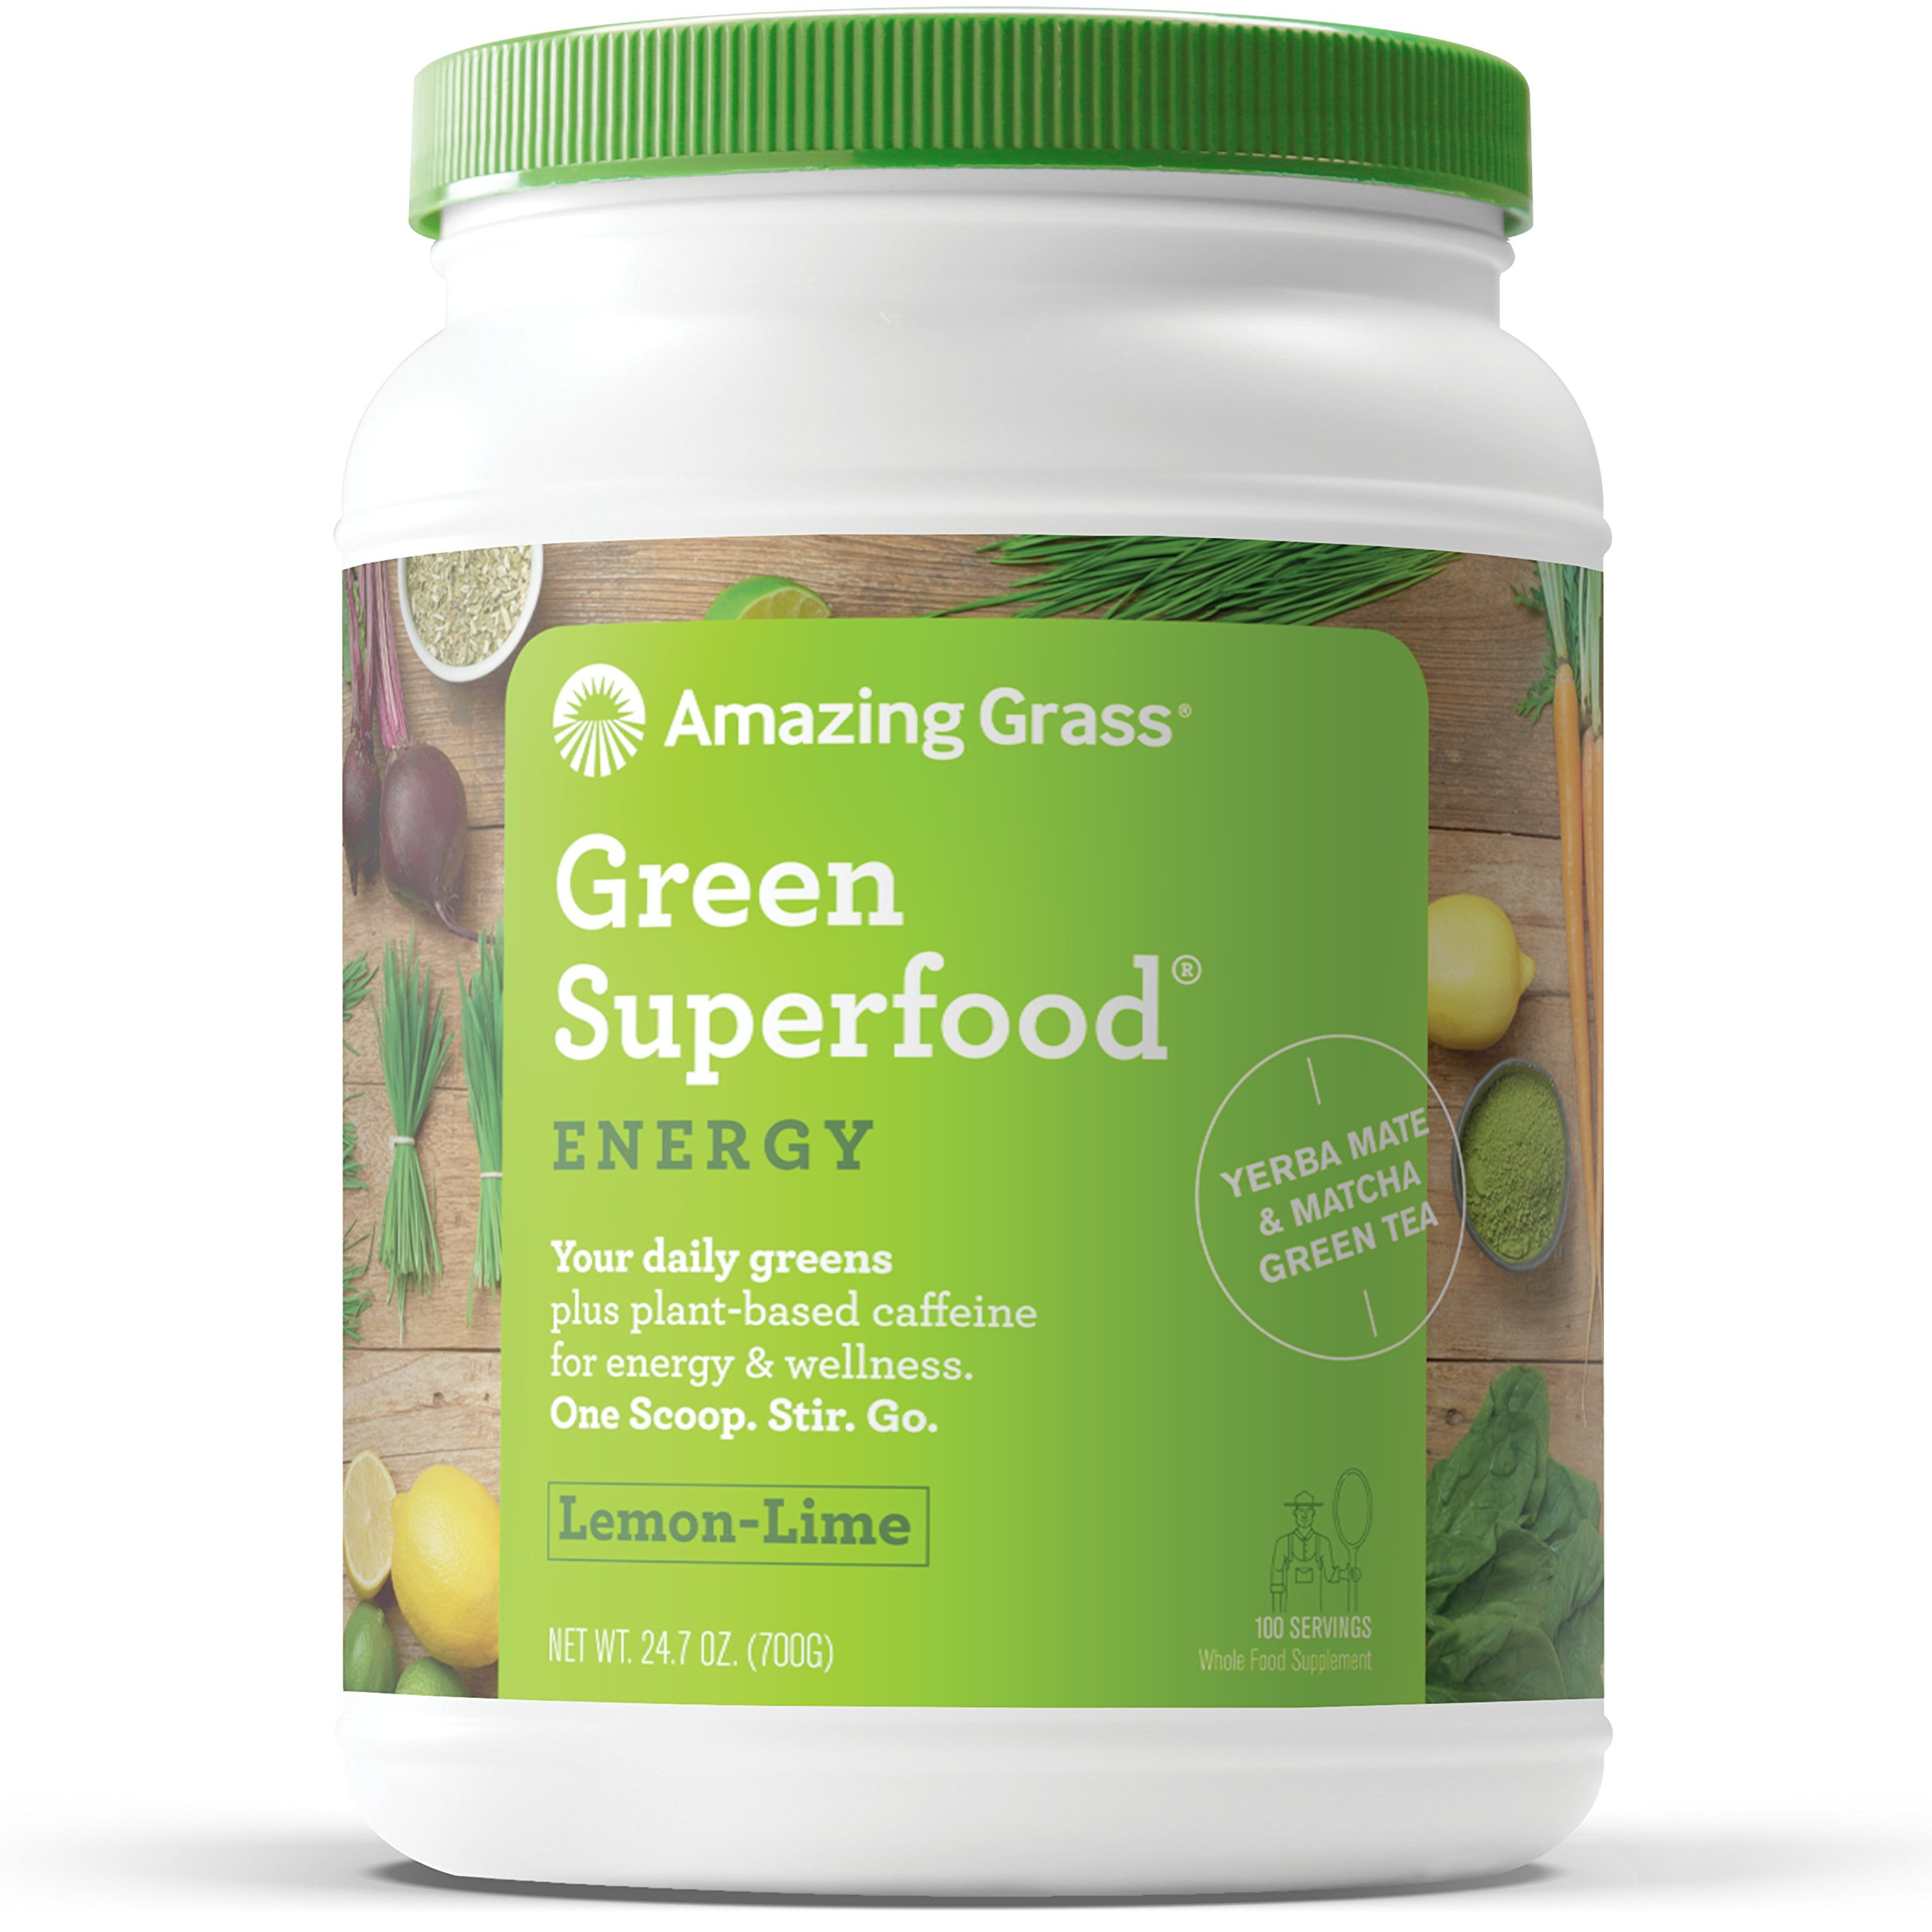 Superfood for energy